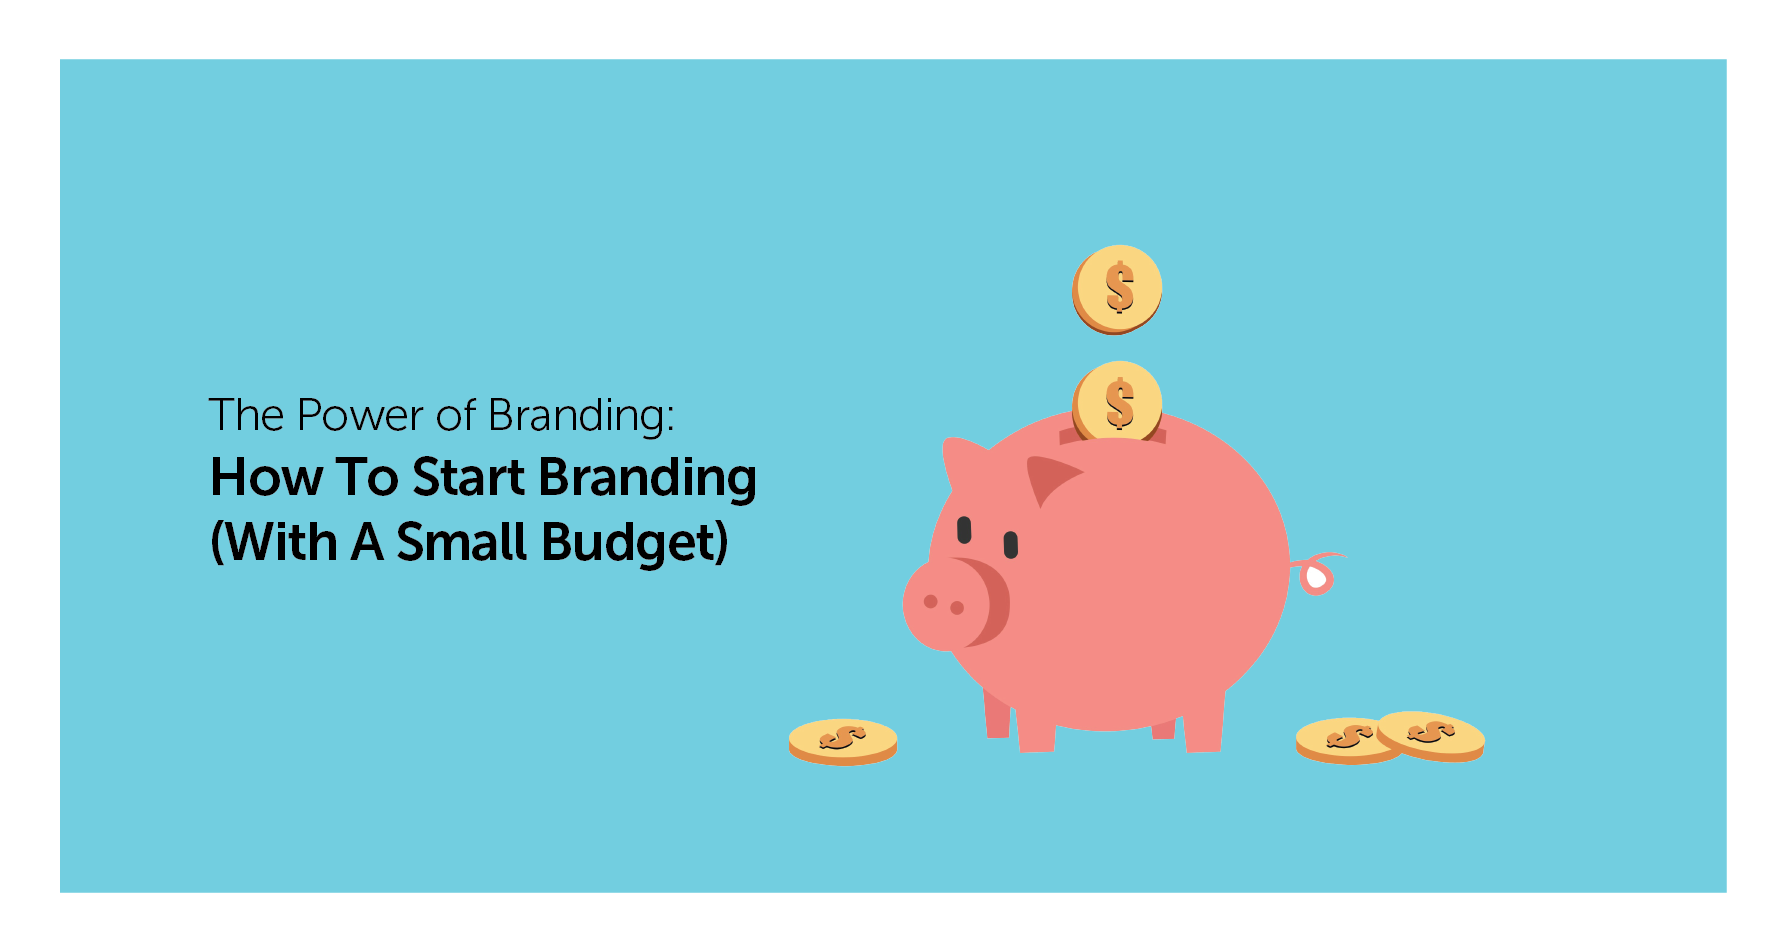 how to start branding on a small budget banner